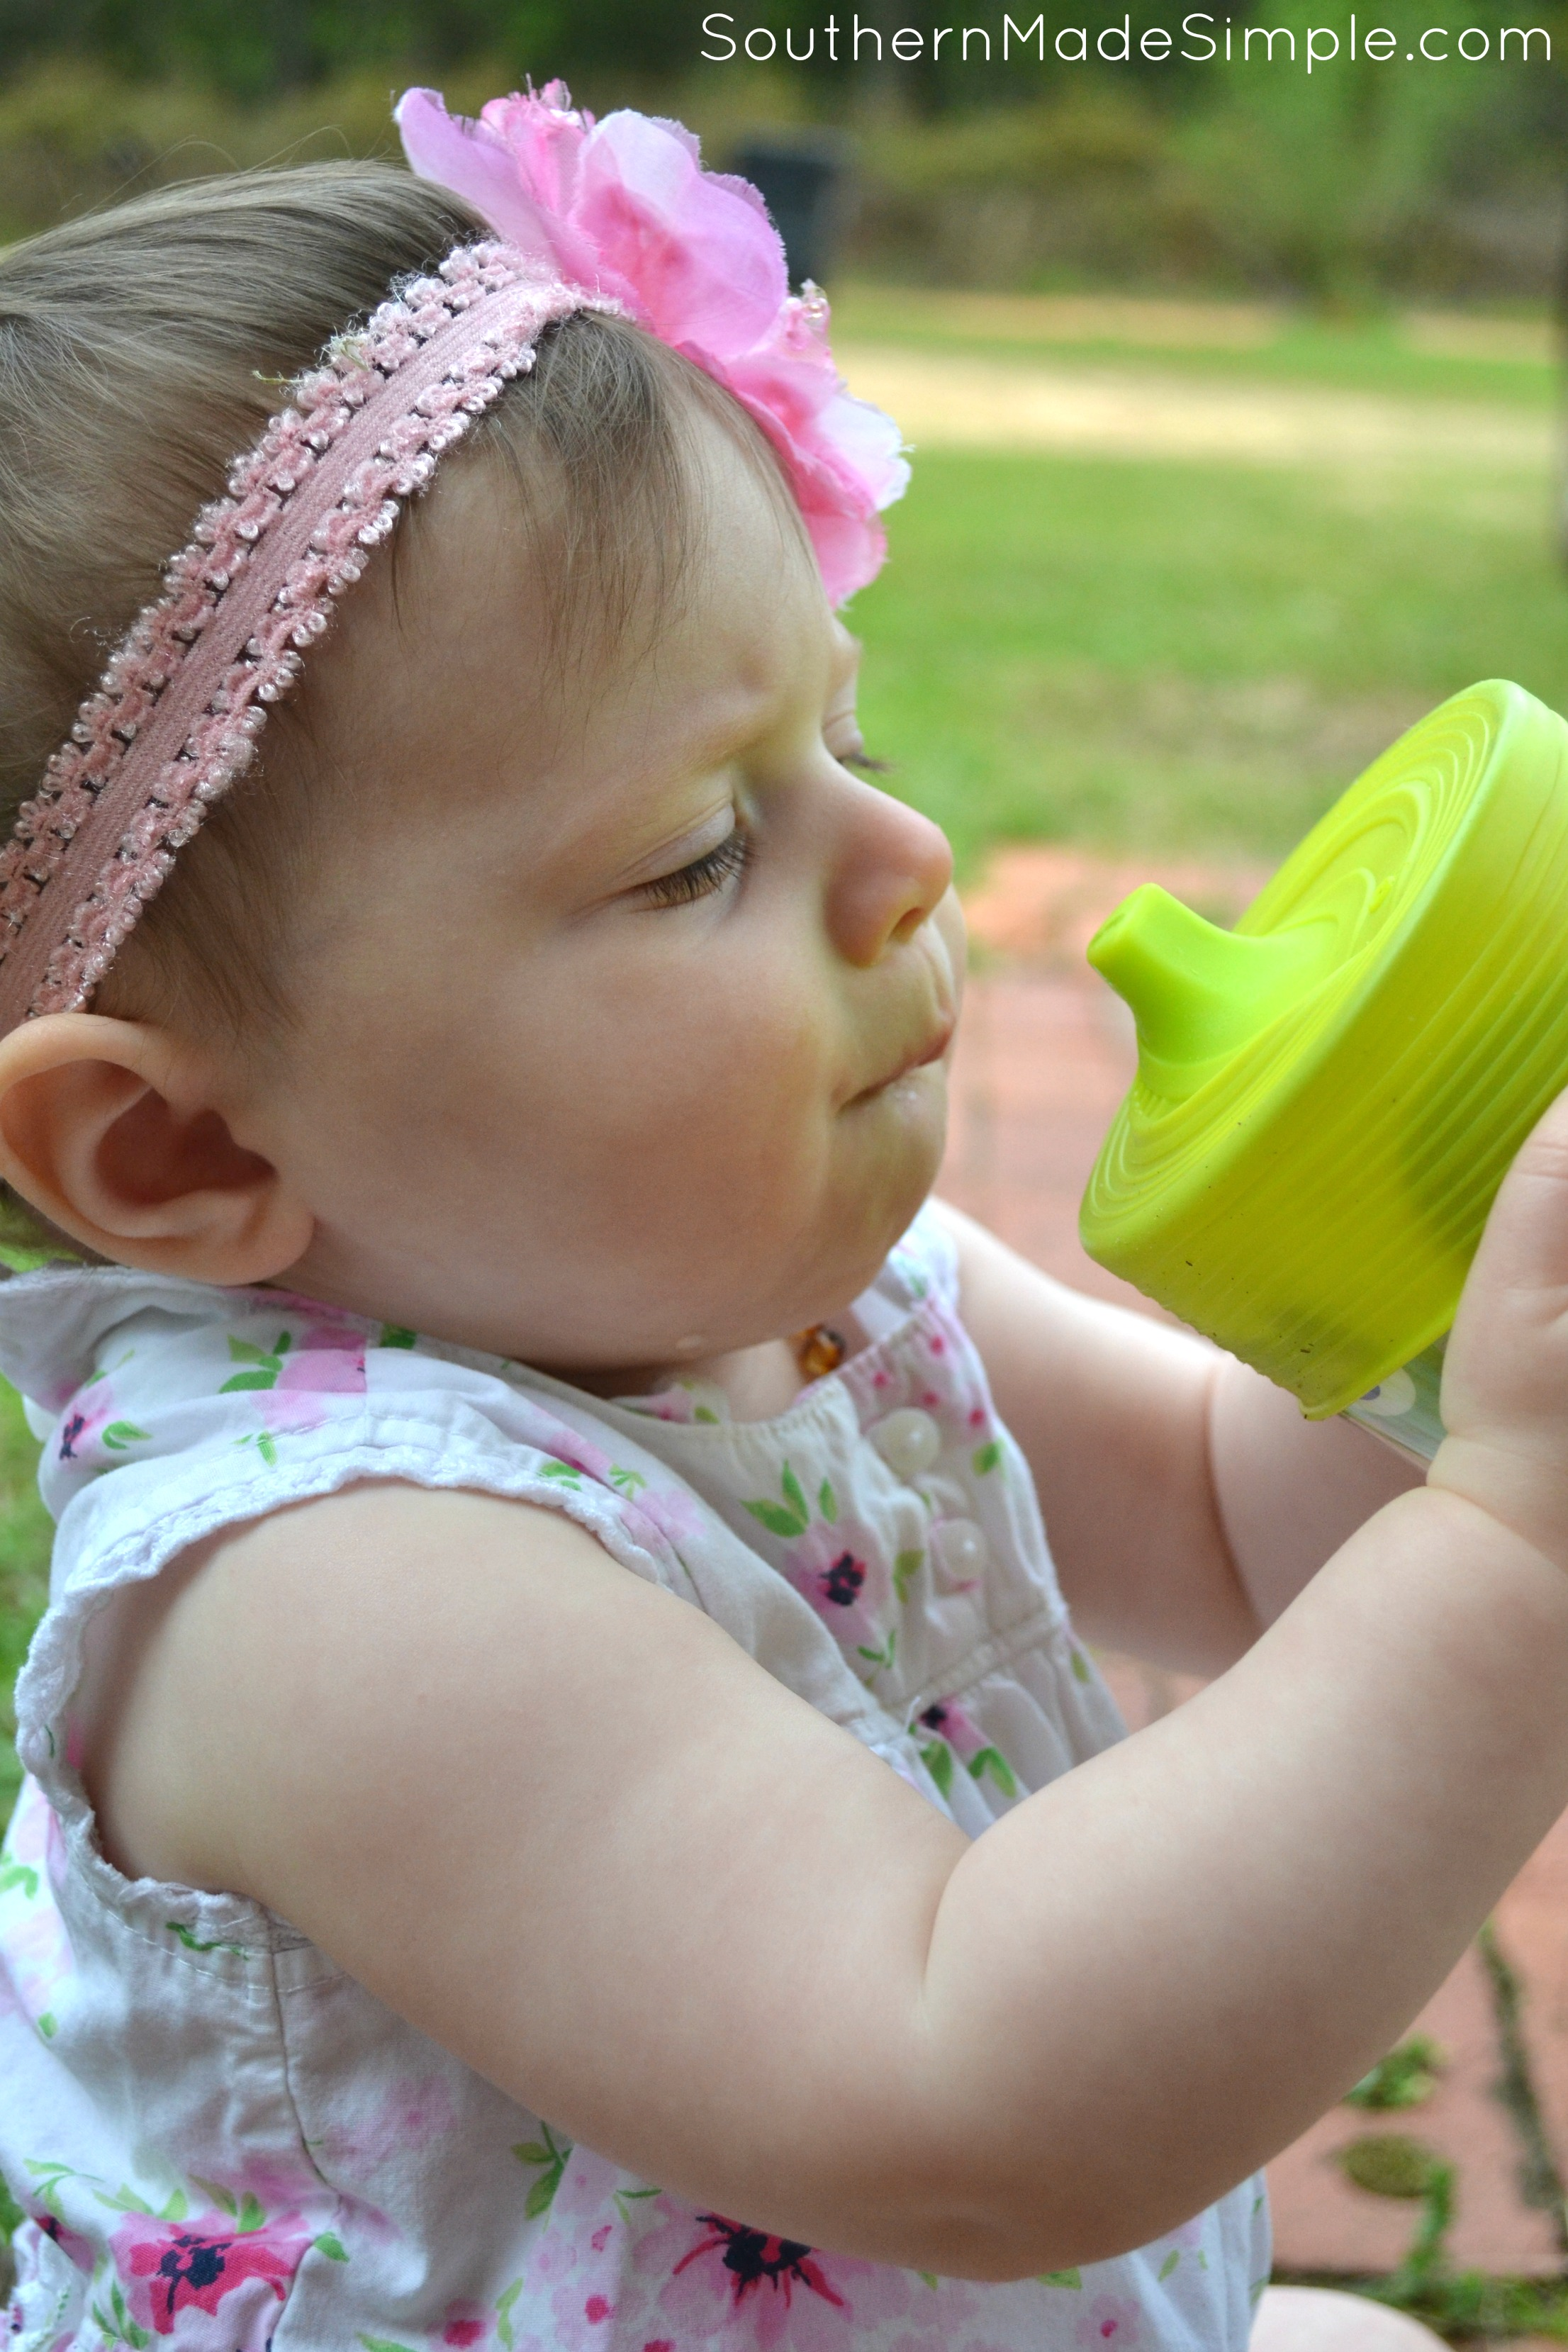 Turn any cup into a sippy cup with this neat product!